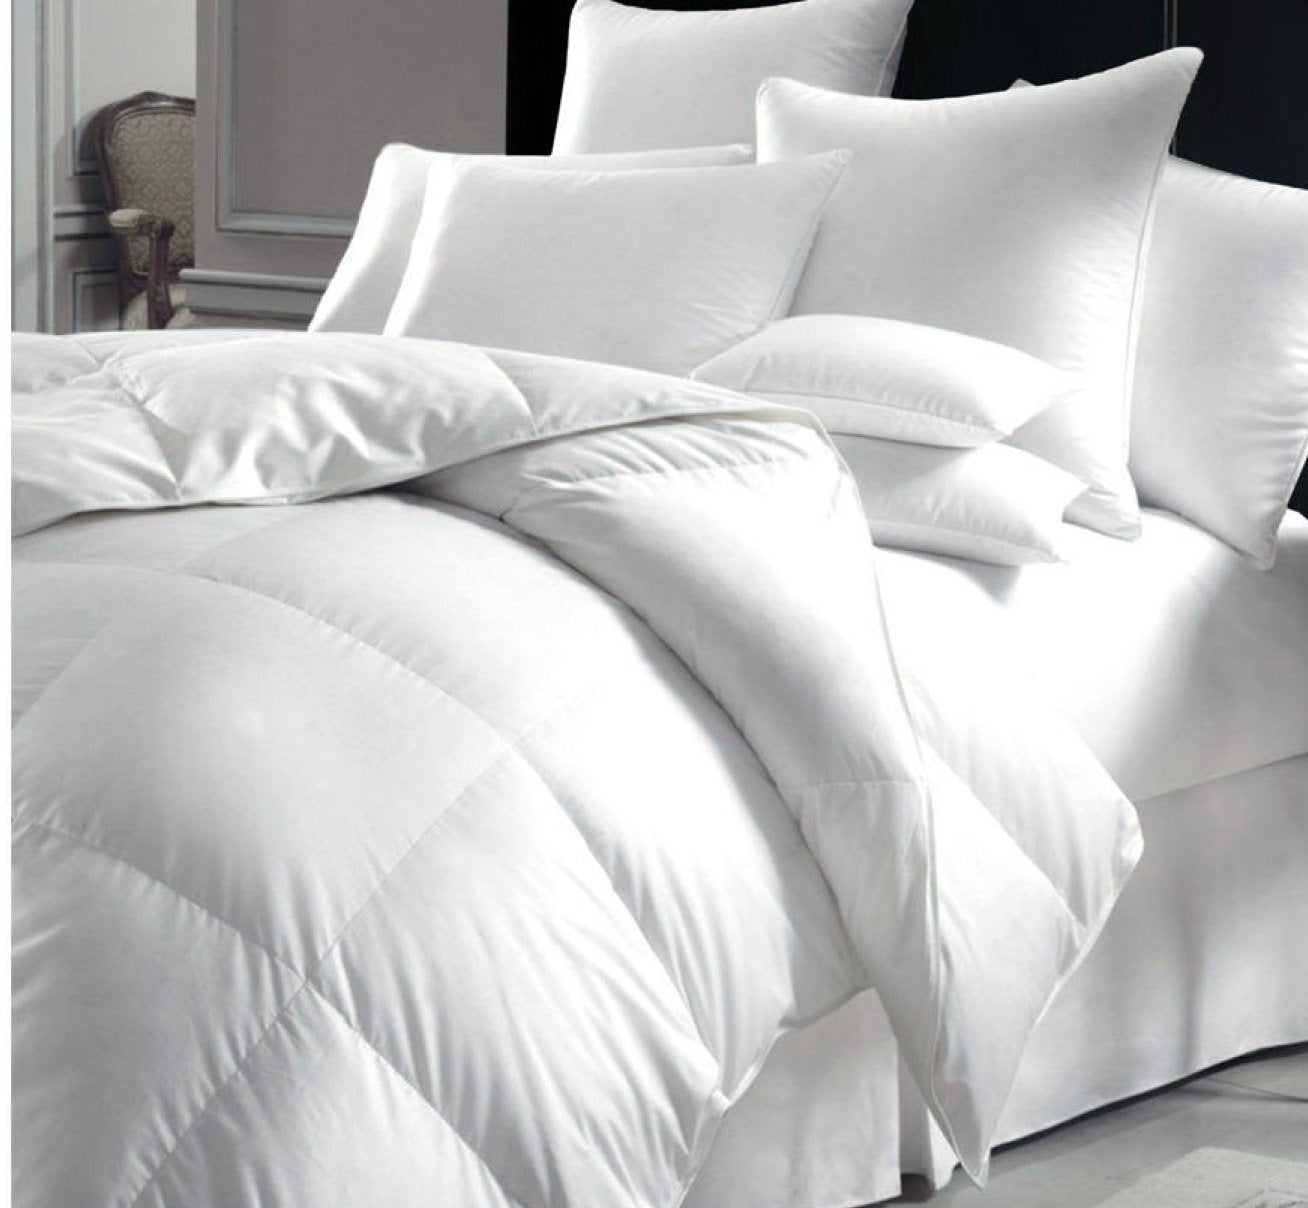 "Trance Home Linen Cotton Microfibre Double Duvet (White, 88"" x 96"")"